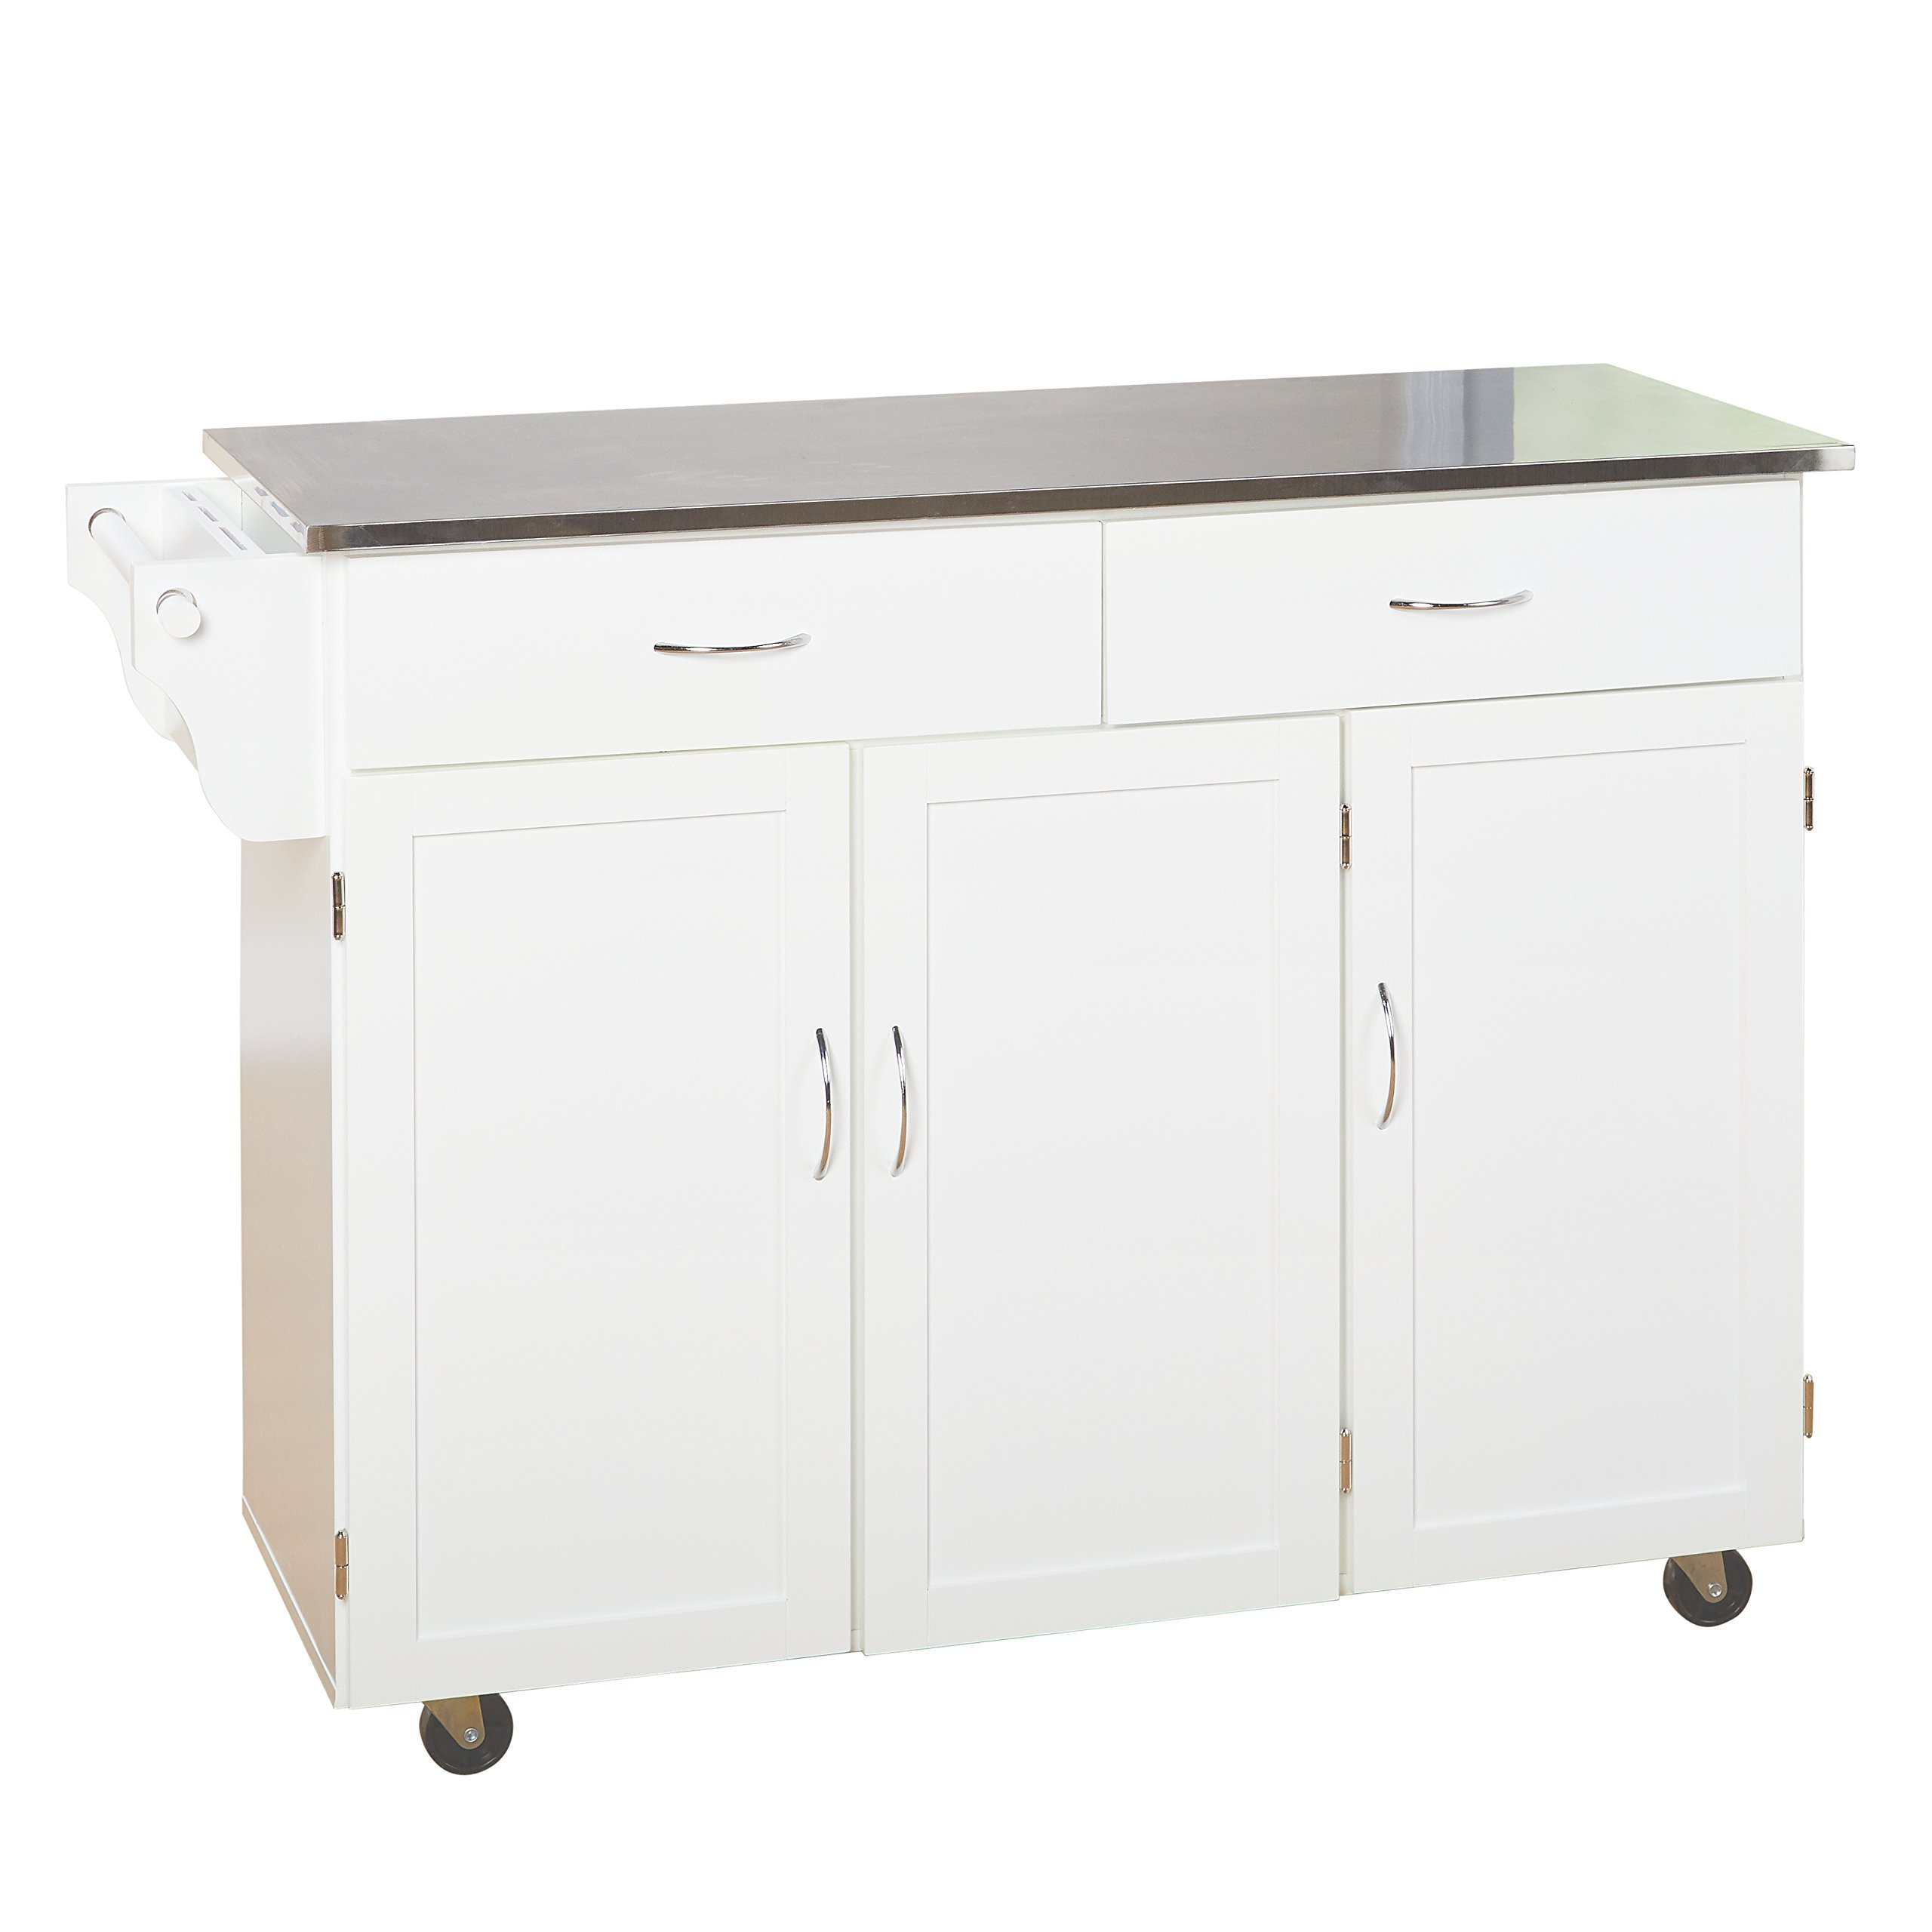 Target Marketing Systems 60049WHT XL Kitchen Cart, X-Large, White by Target Marketing Systems